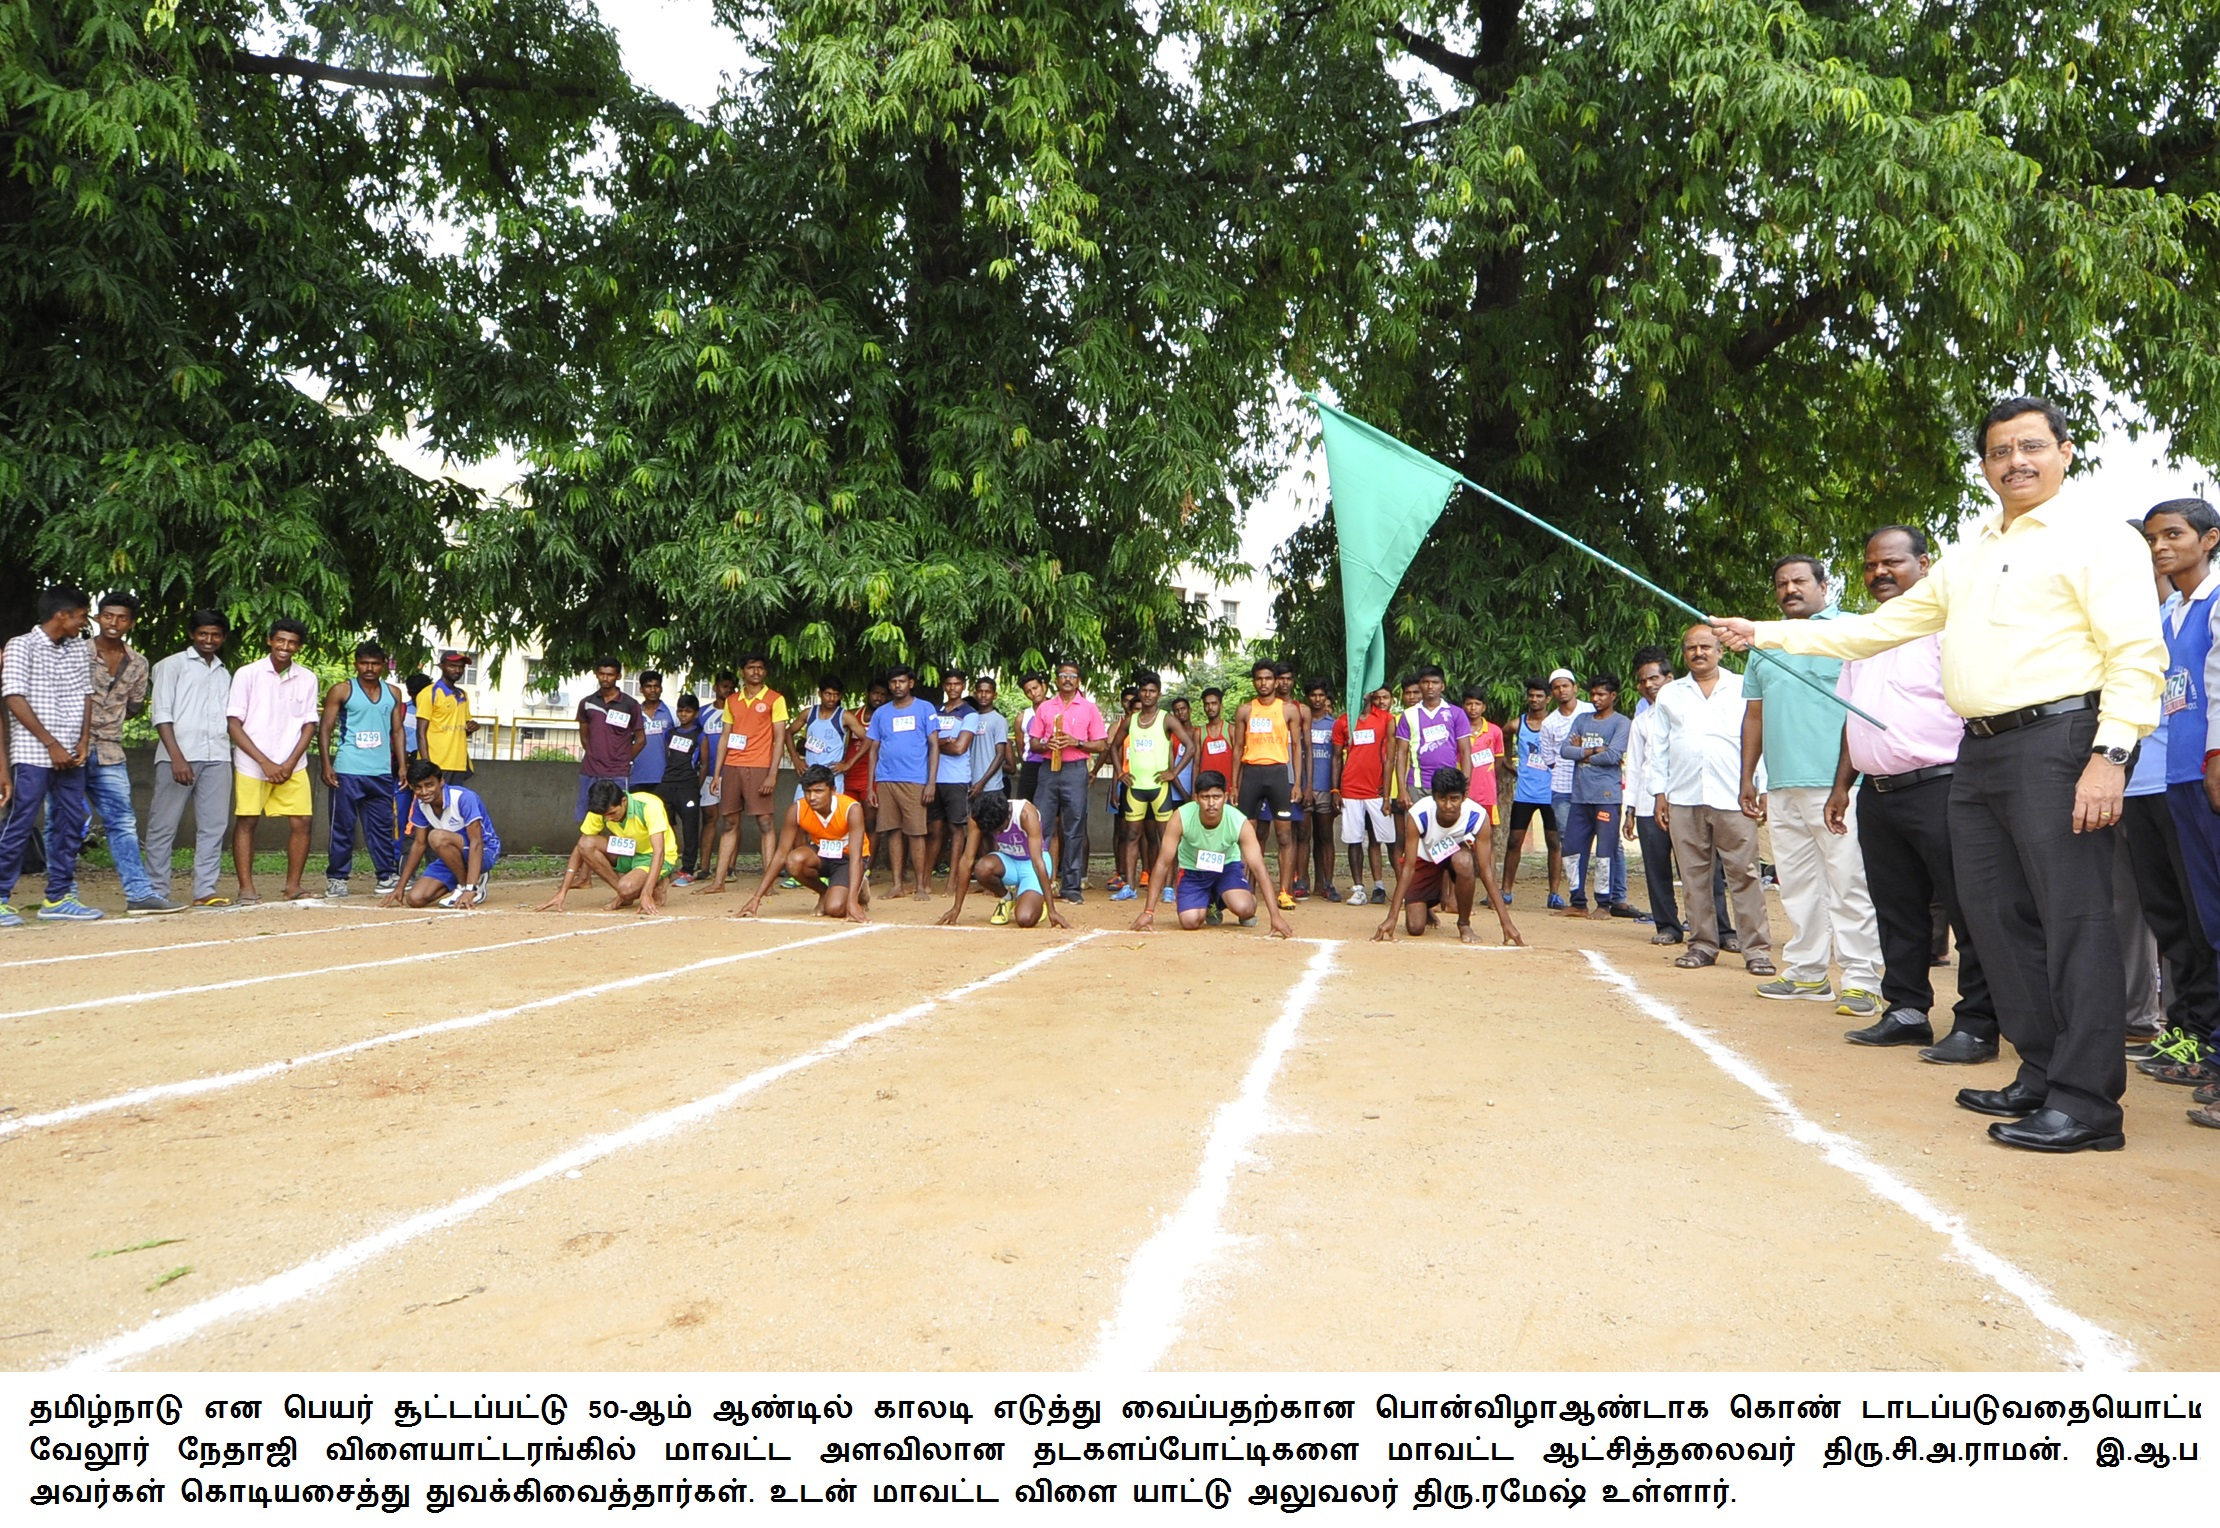 District Collector Thiru.S.A.Raman, I.A.S., inaugurated Sports meet for the Golden jubilee of renaming the State as